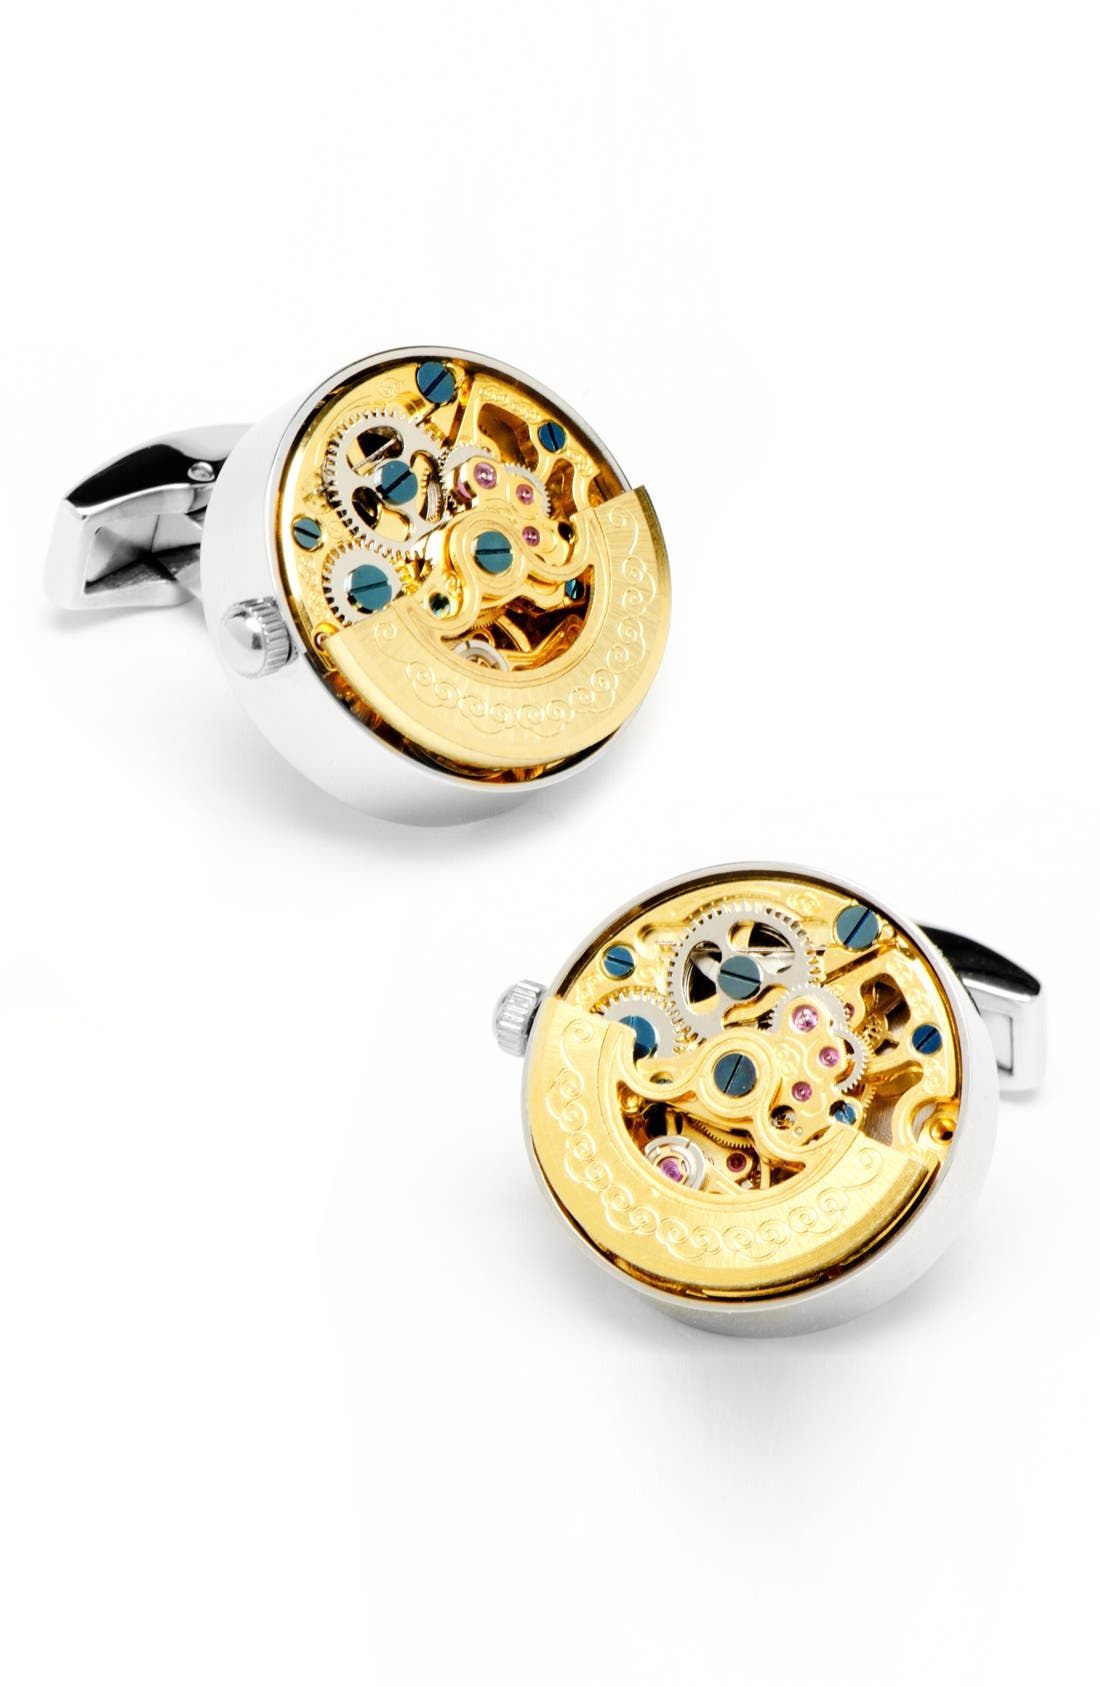 Ox and Bull Trading Co. Watch Movement Cuff Links